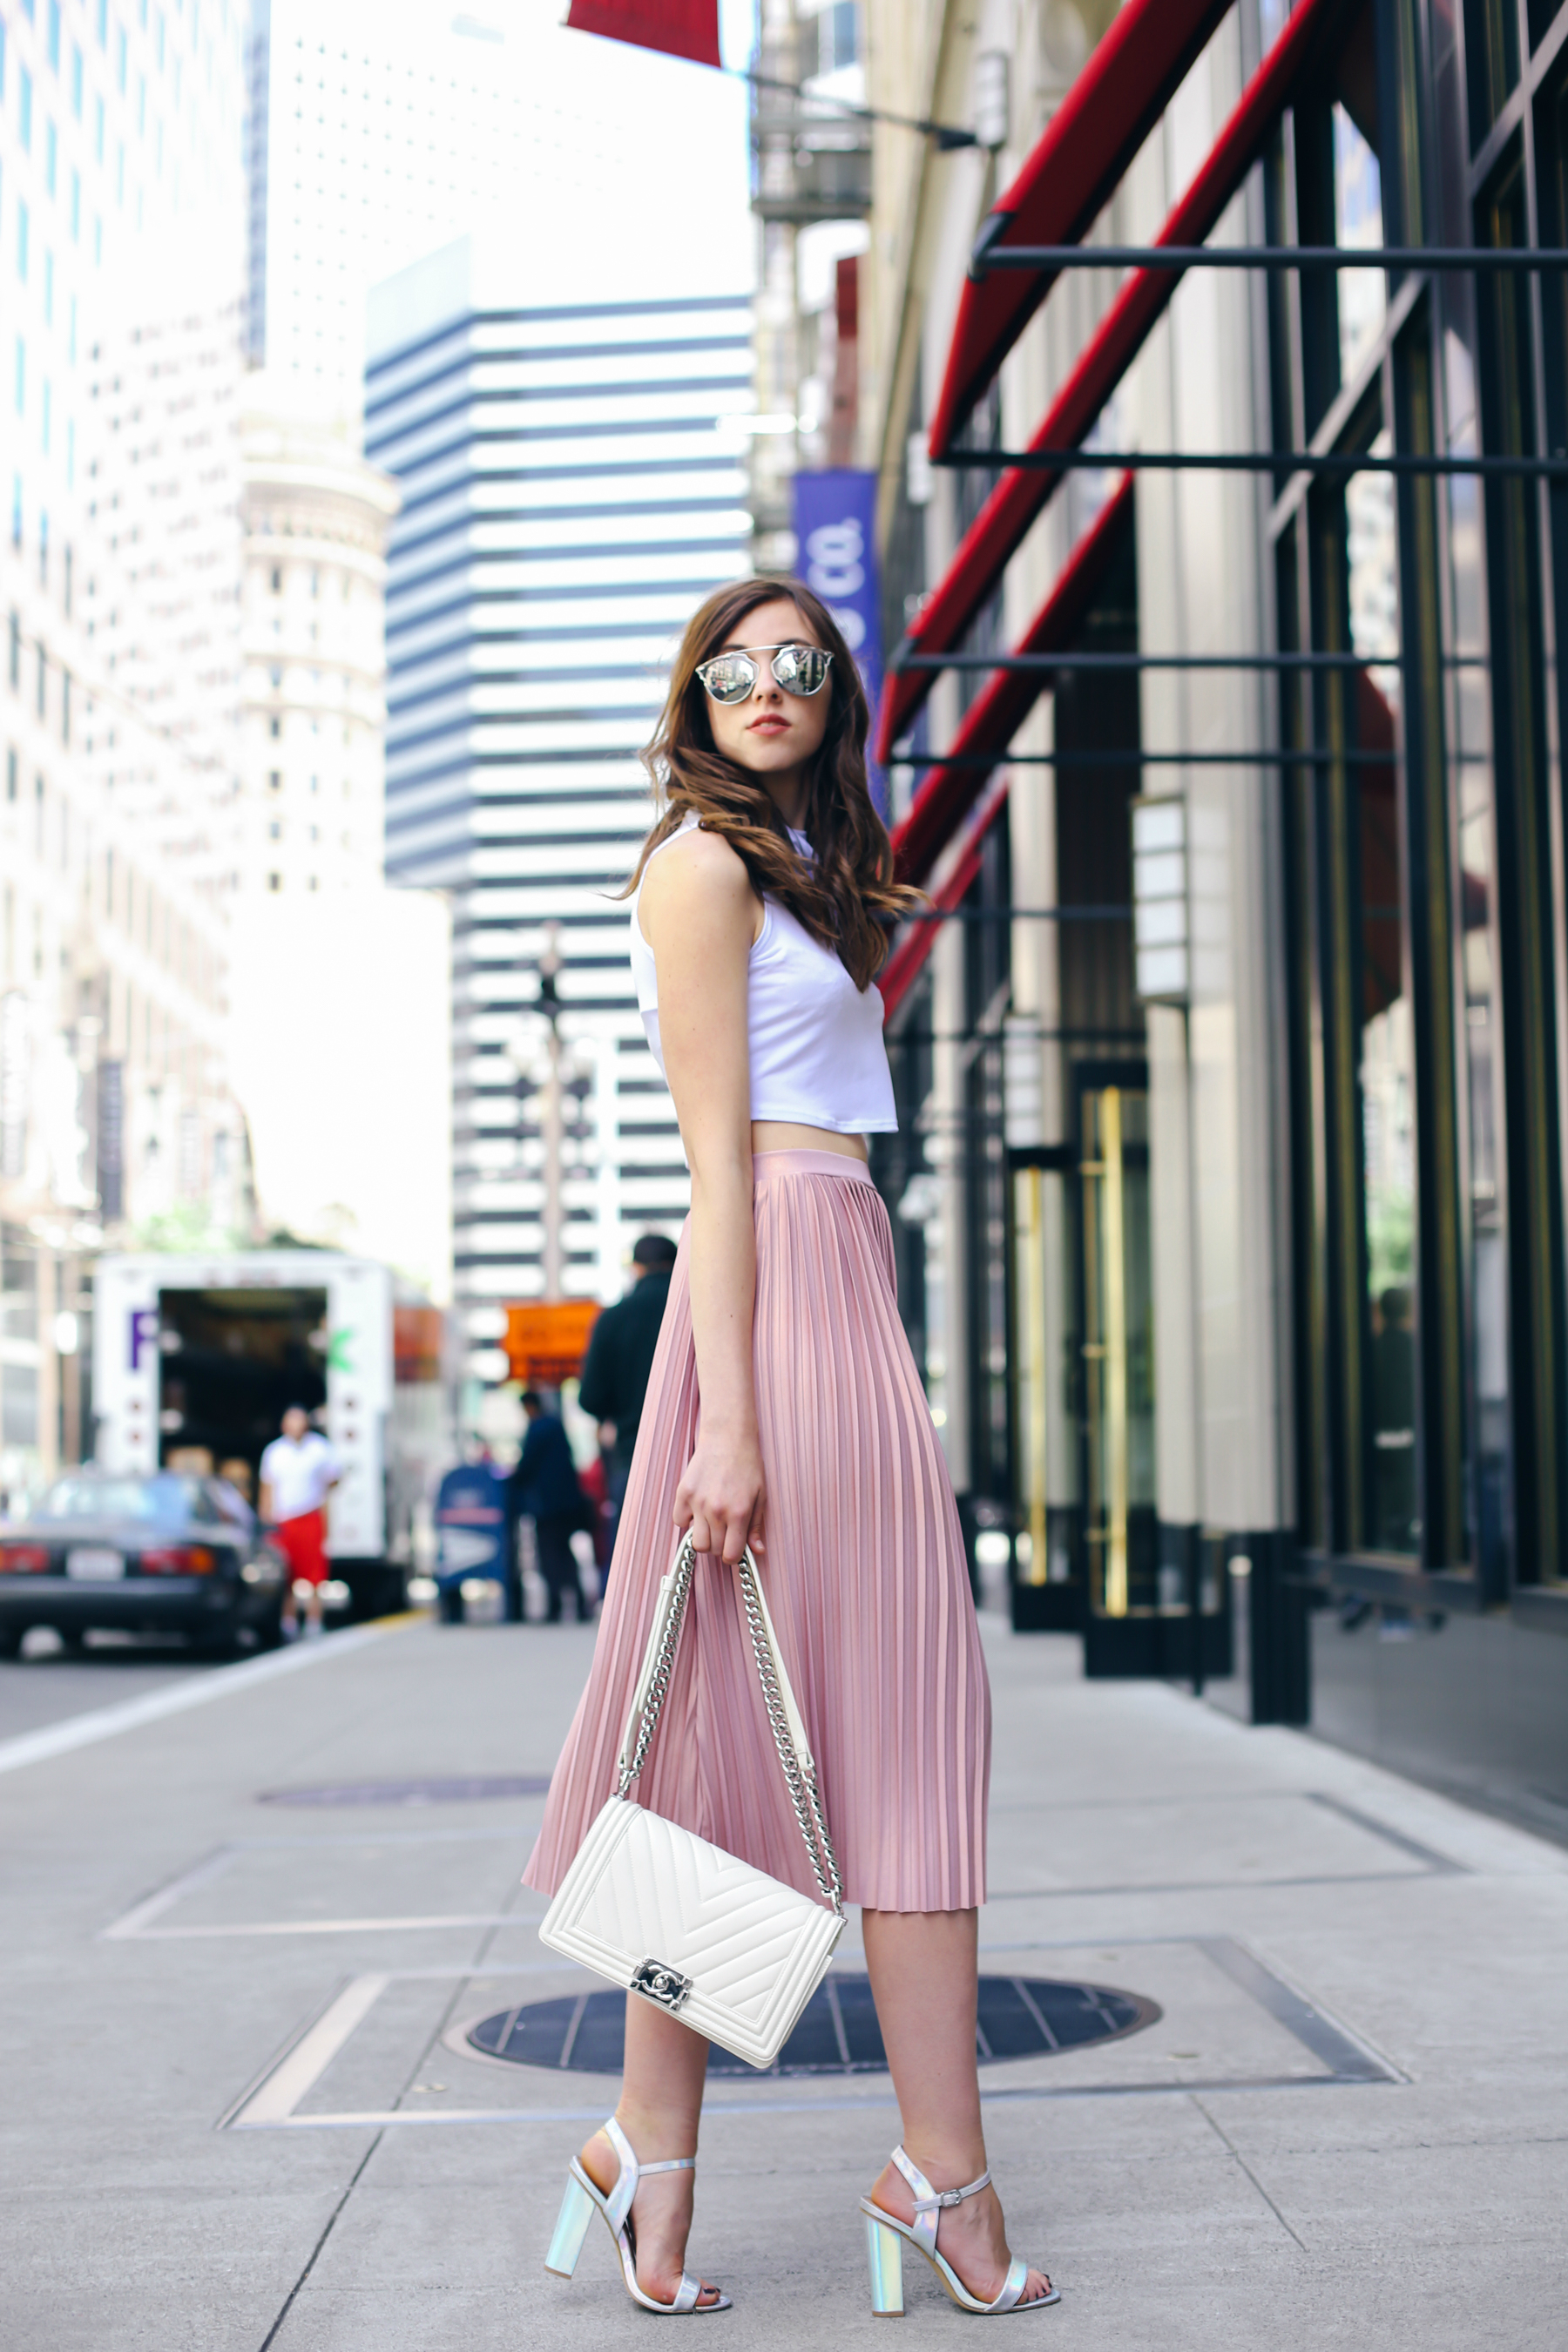 Barbora-Ondracova-FashioninmySoul-Fashion-Blogger-Photography-RyanbyRyanChua-7479